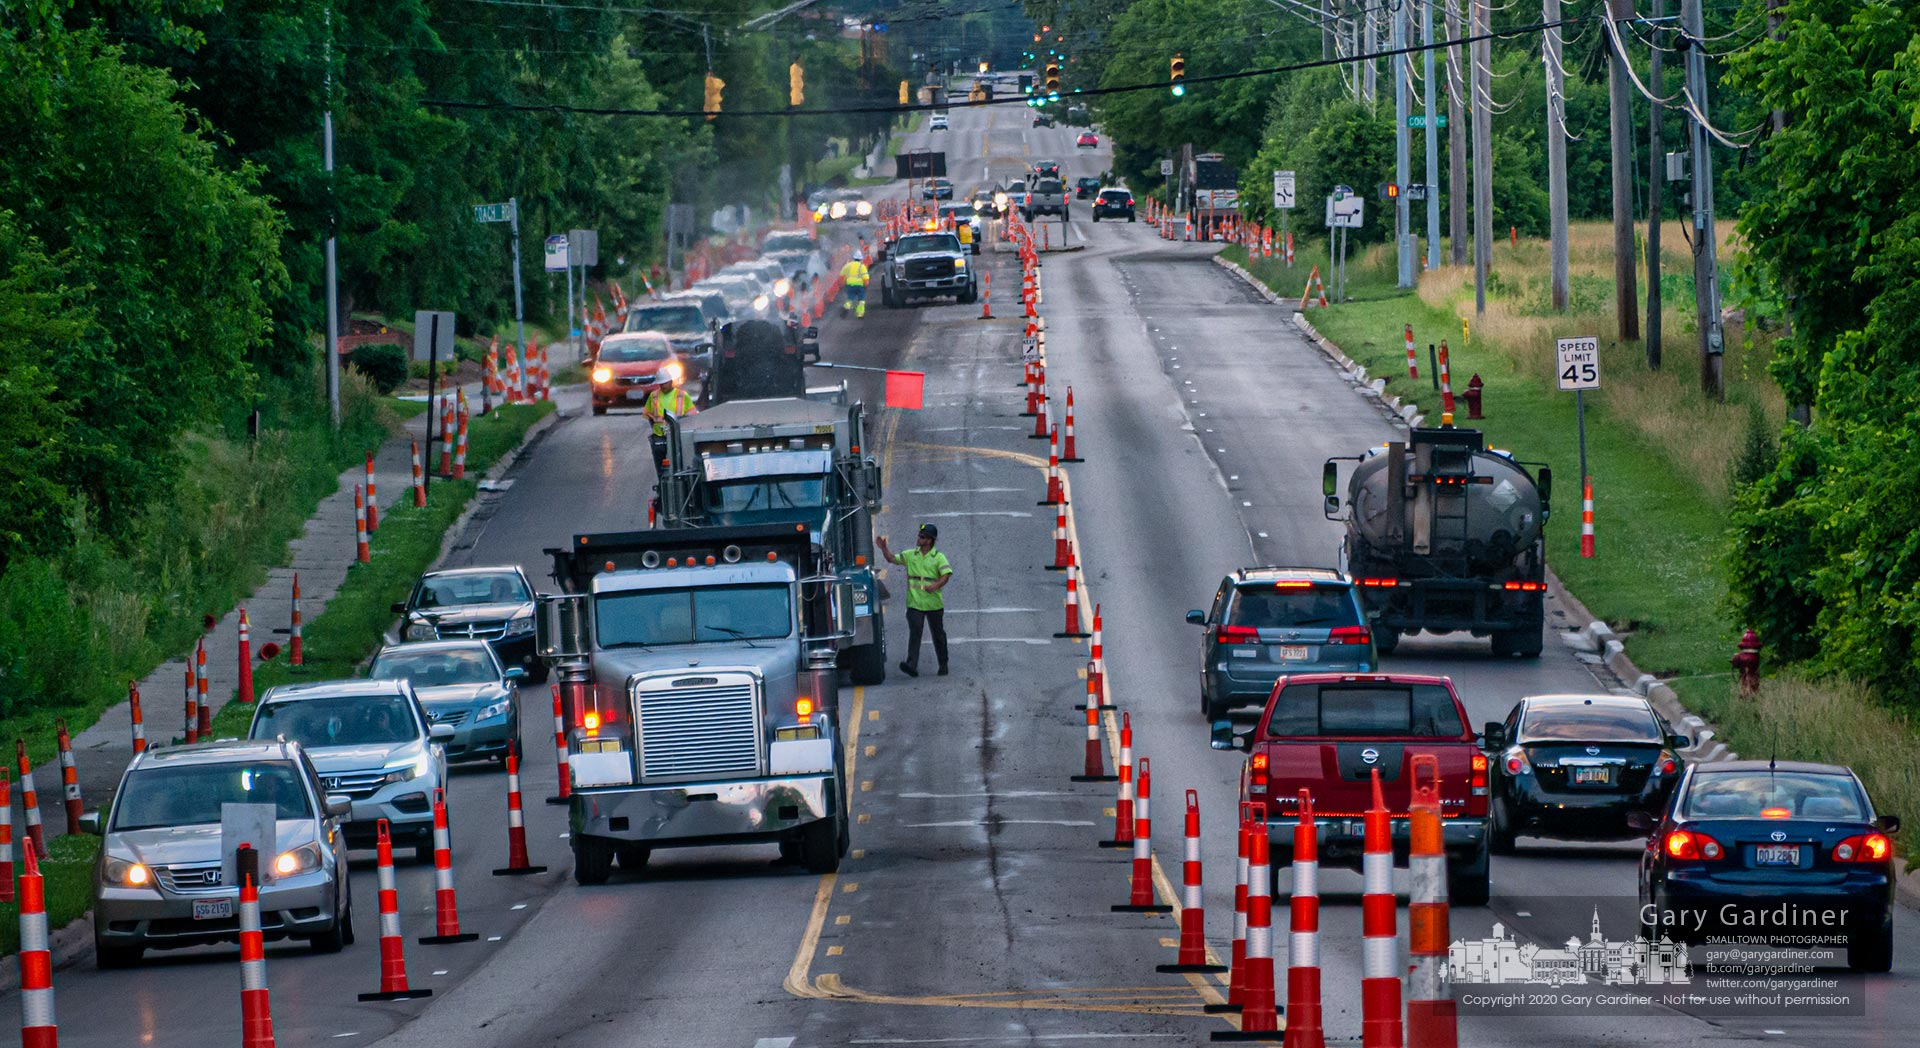 Traffic on Cleveland Avenue was reduced to one lane for the second night for resurfacing from Main to the St. Ann's entrance. My Final Photo for June 23, 2020.